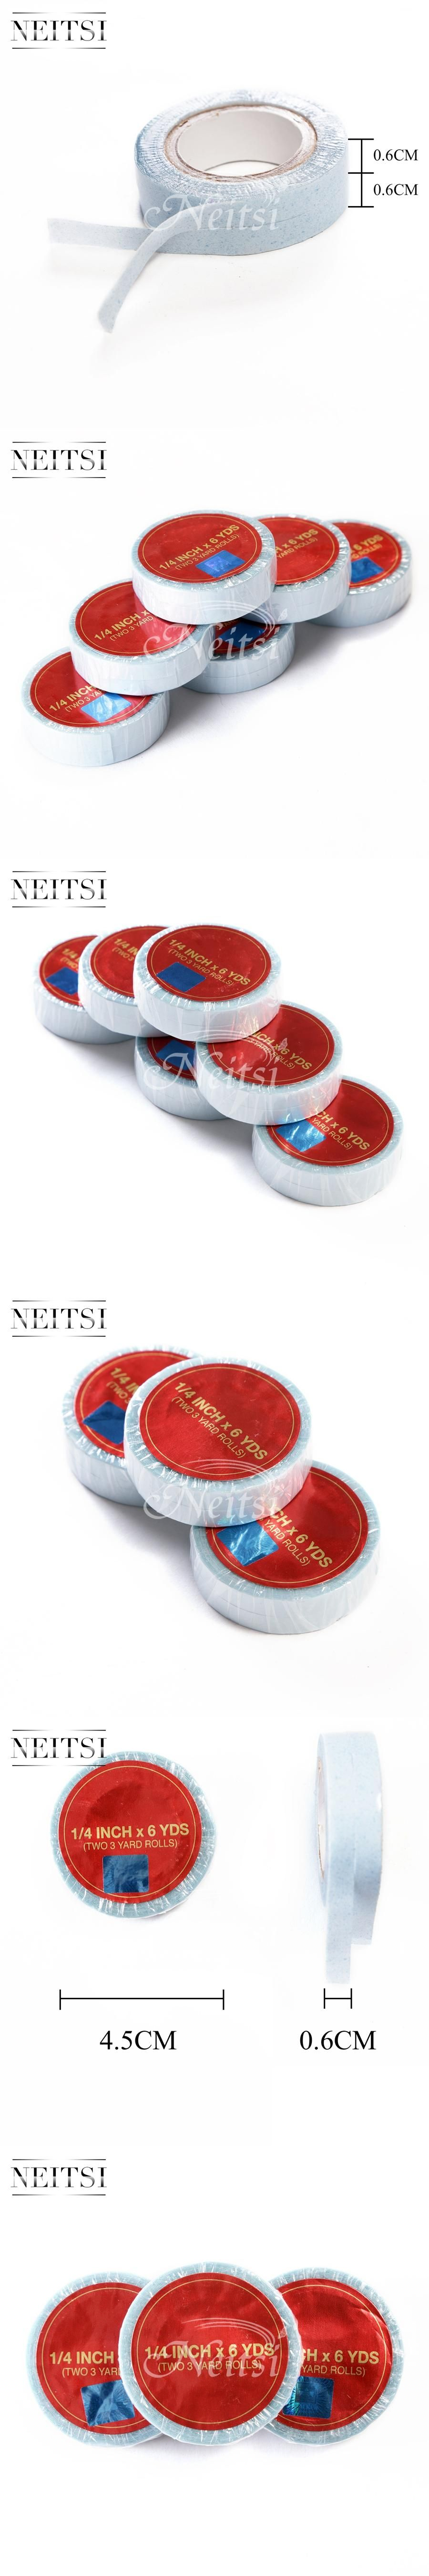 Neitsi Super Glue Tape For Hair Extensions Germany Double Sided 06